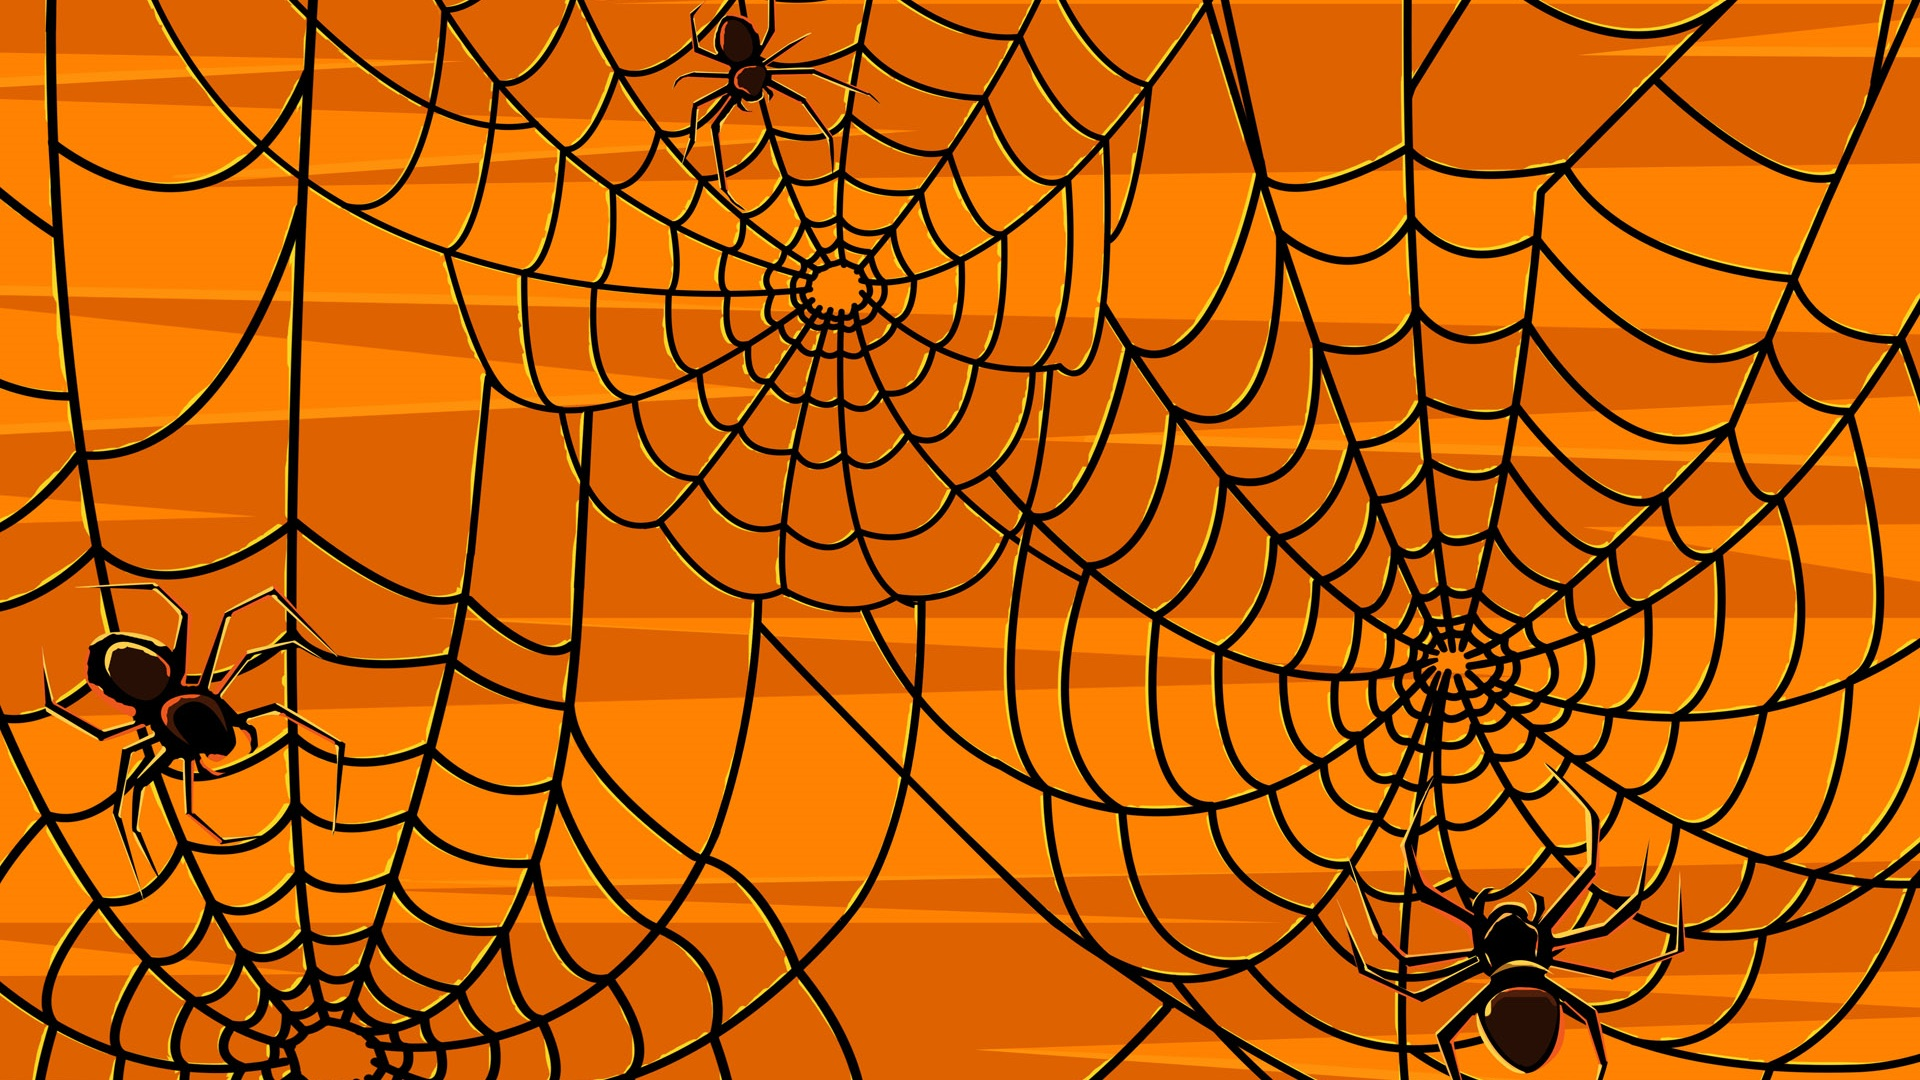 Wonderful Halloween Wallpaper 41975 1920x1080 px HDWallSourcecom